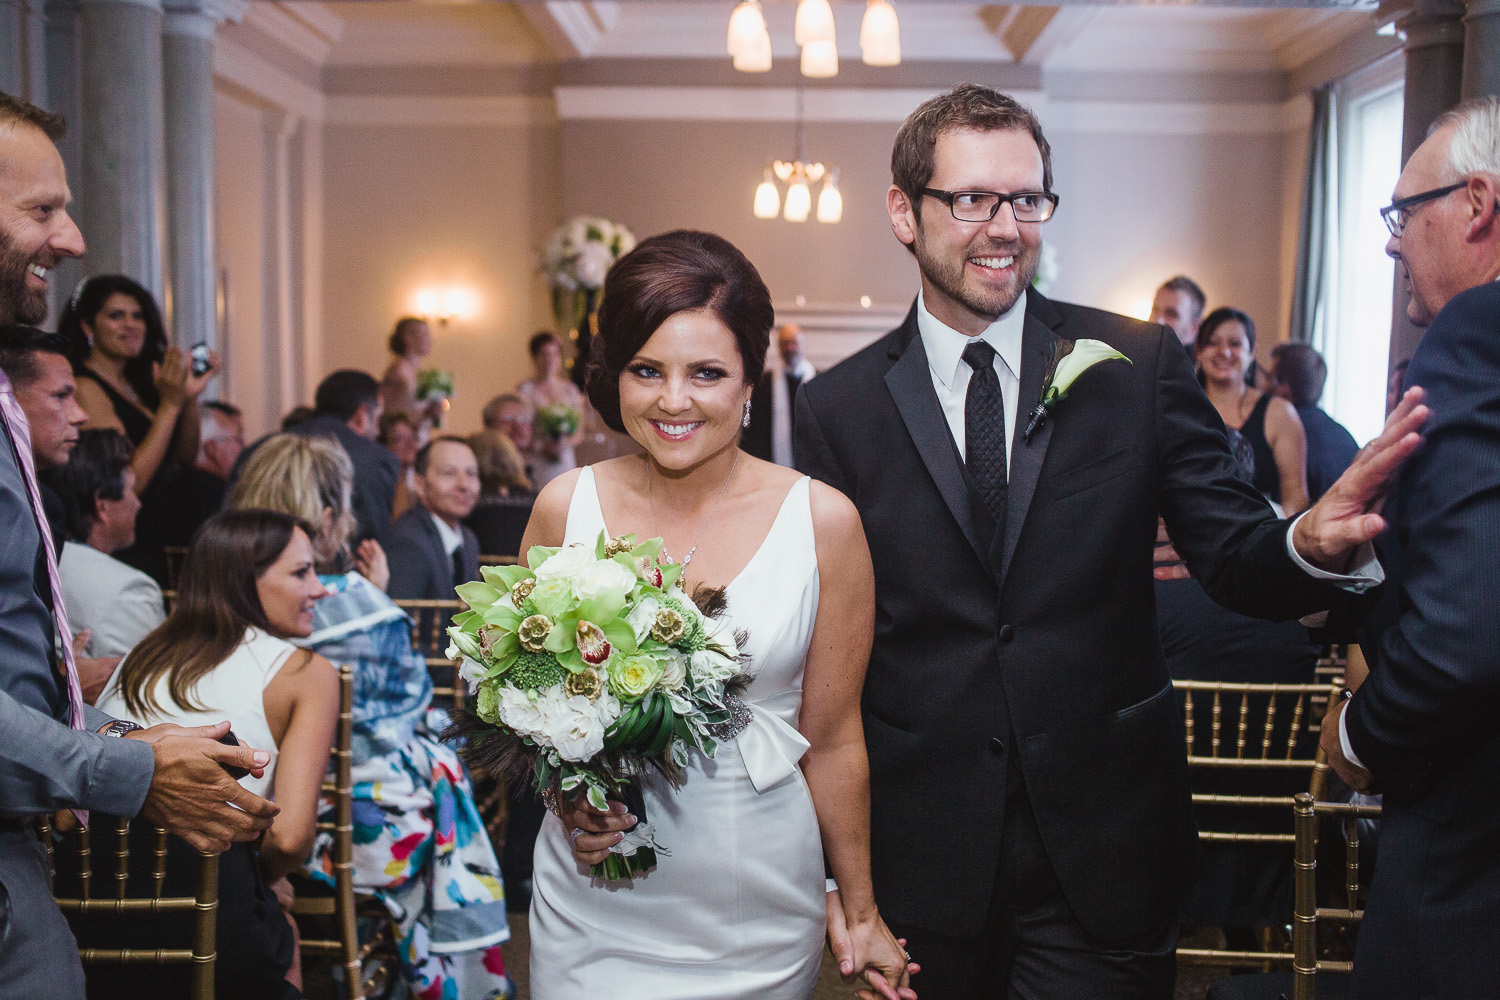 VANCOUVER CLUB WEDDING PHOTOGRAPHER – KIMBERLY & ANDREW